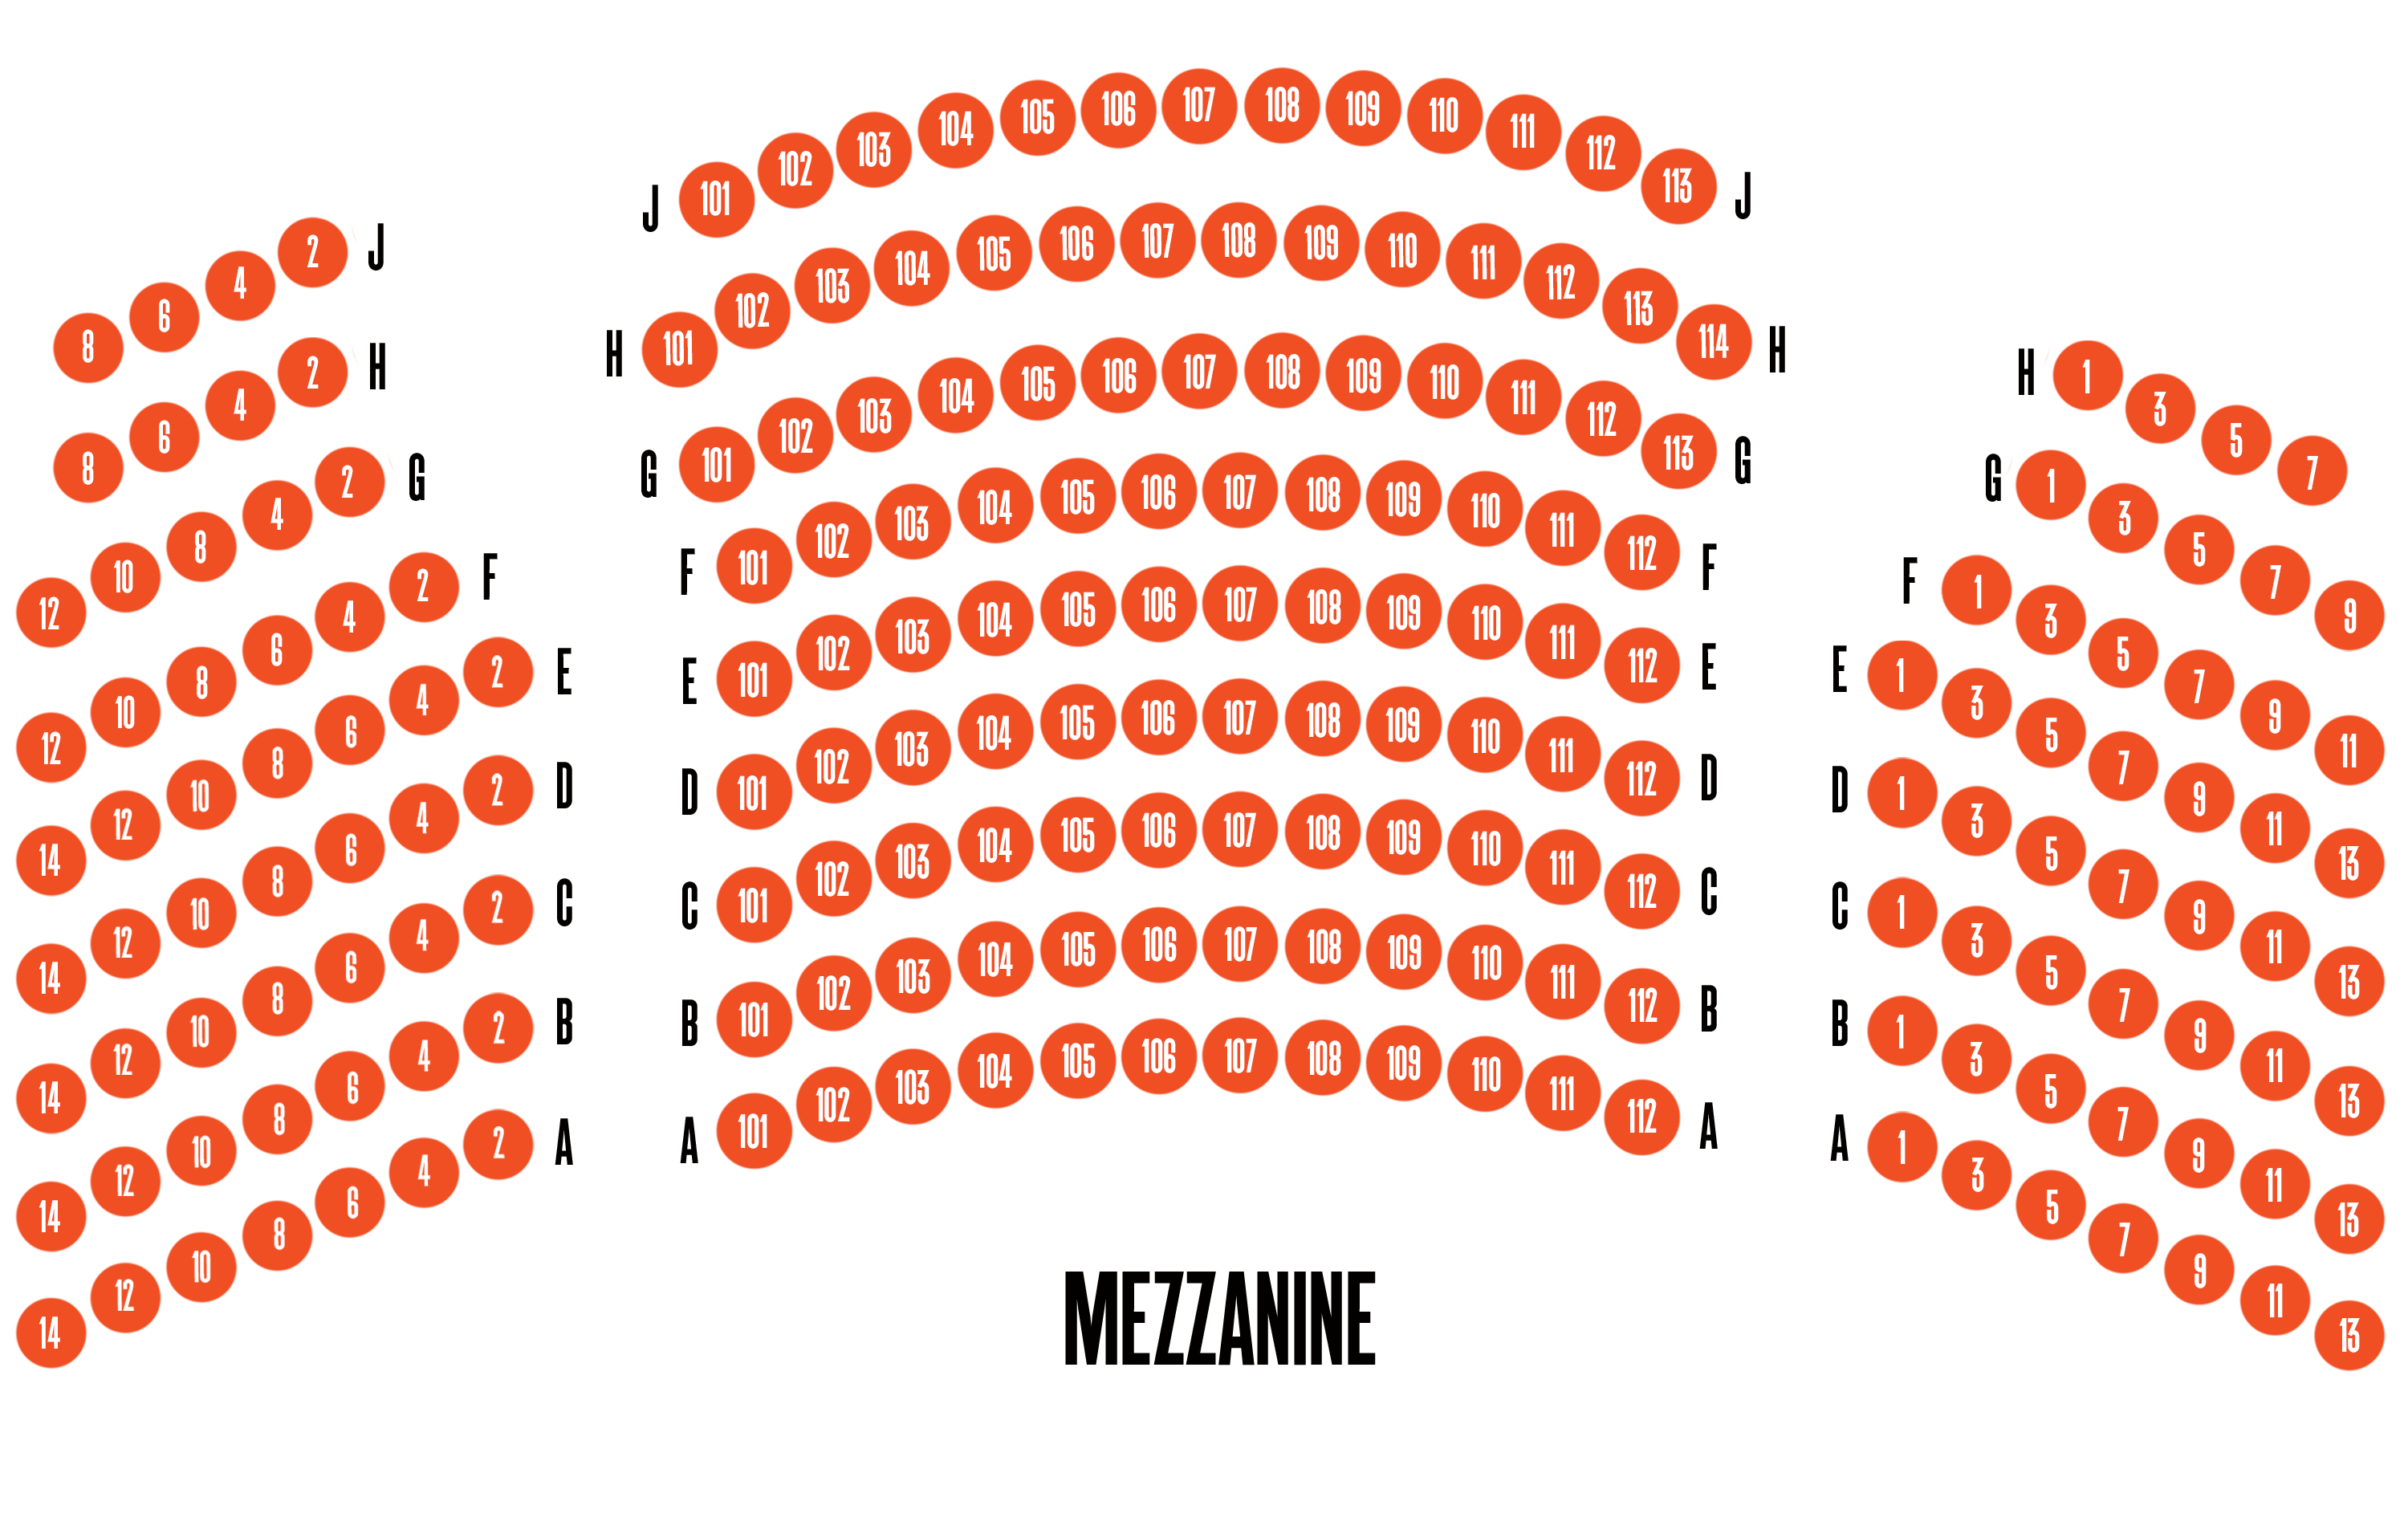 Helen Hayes Theatre Broadway Seating Charts